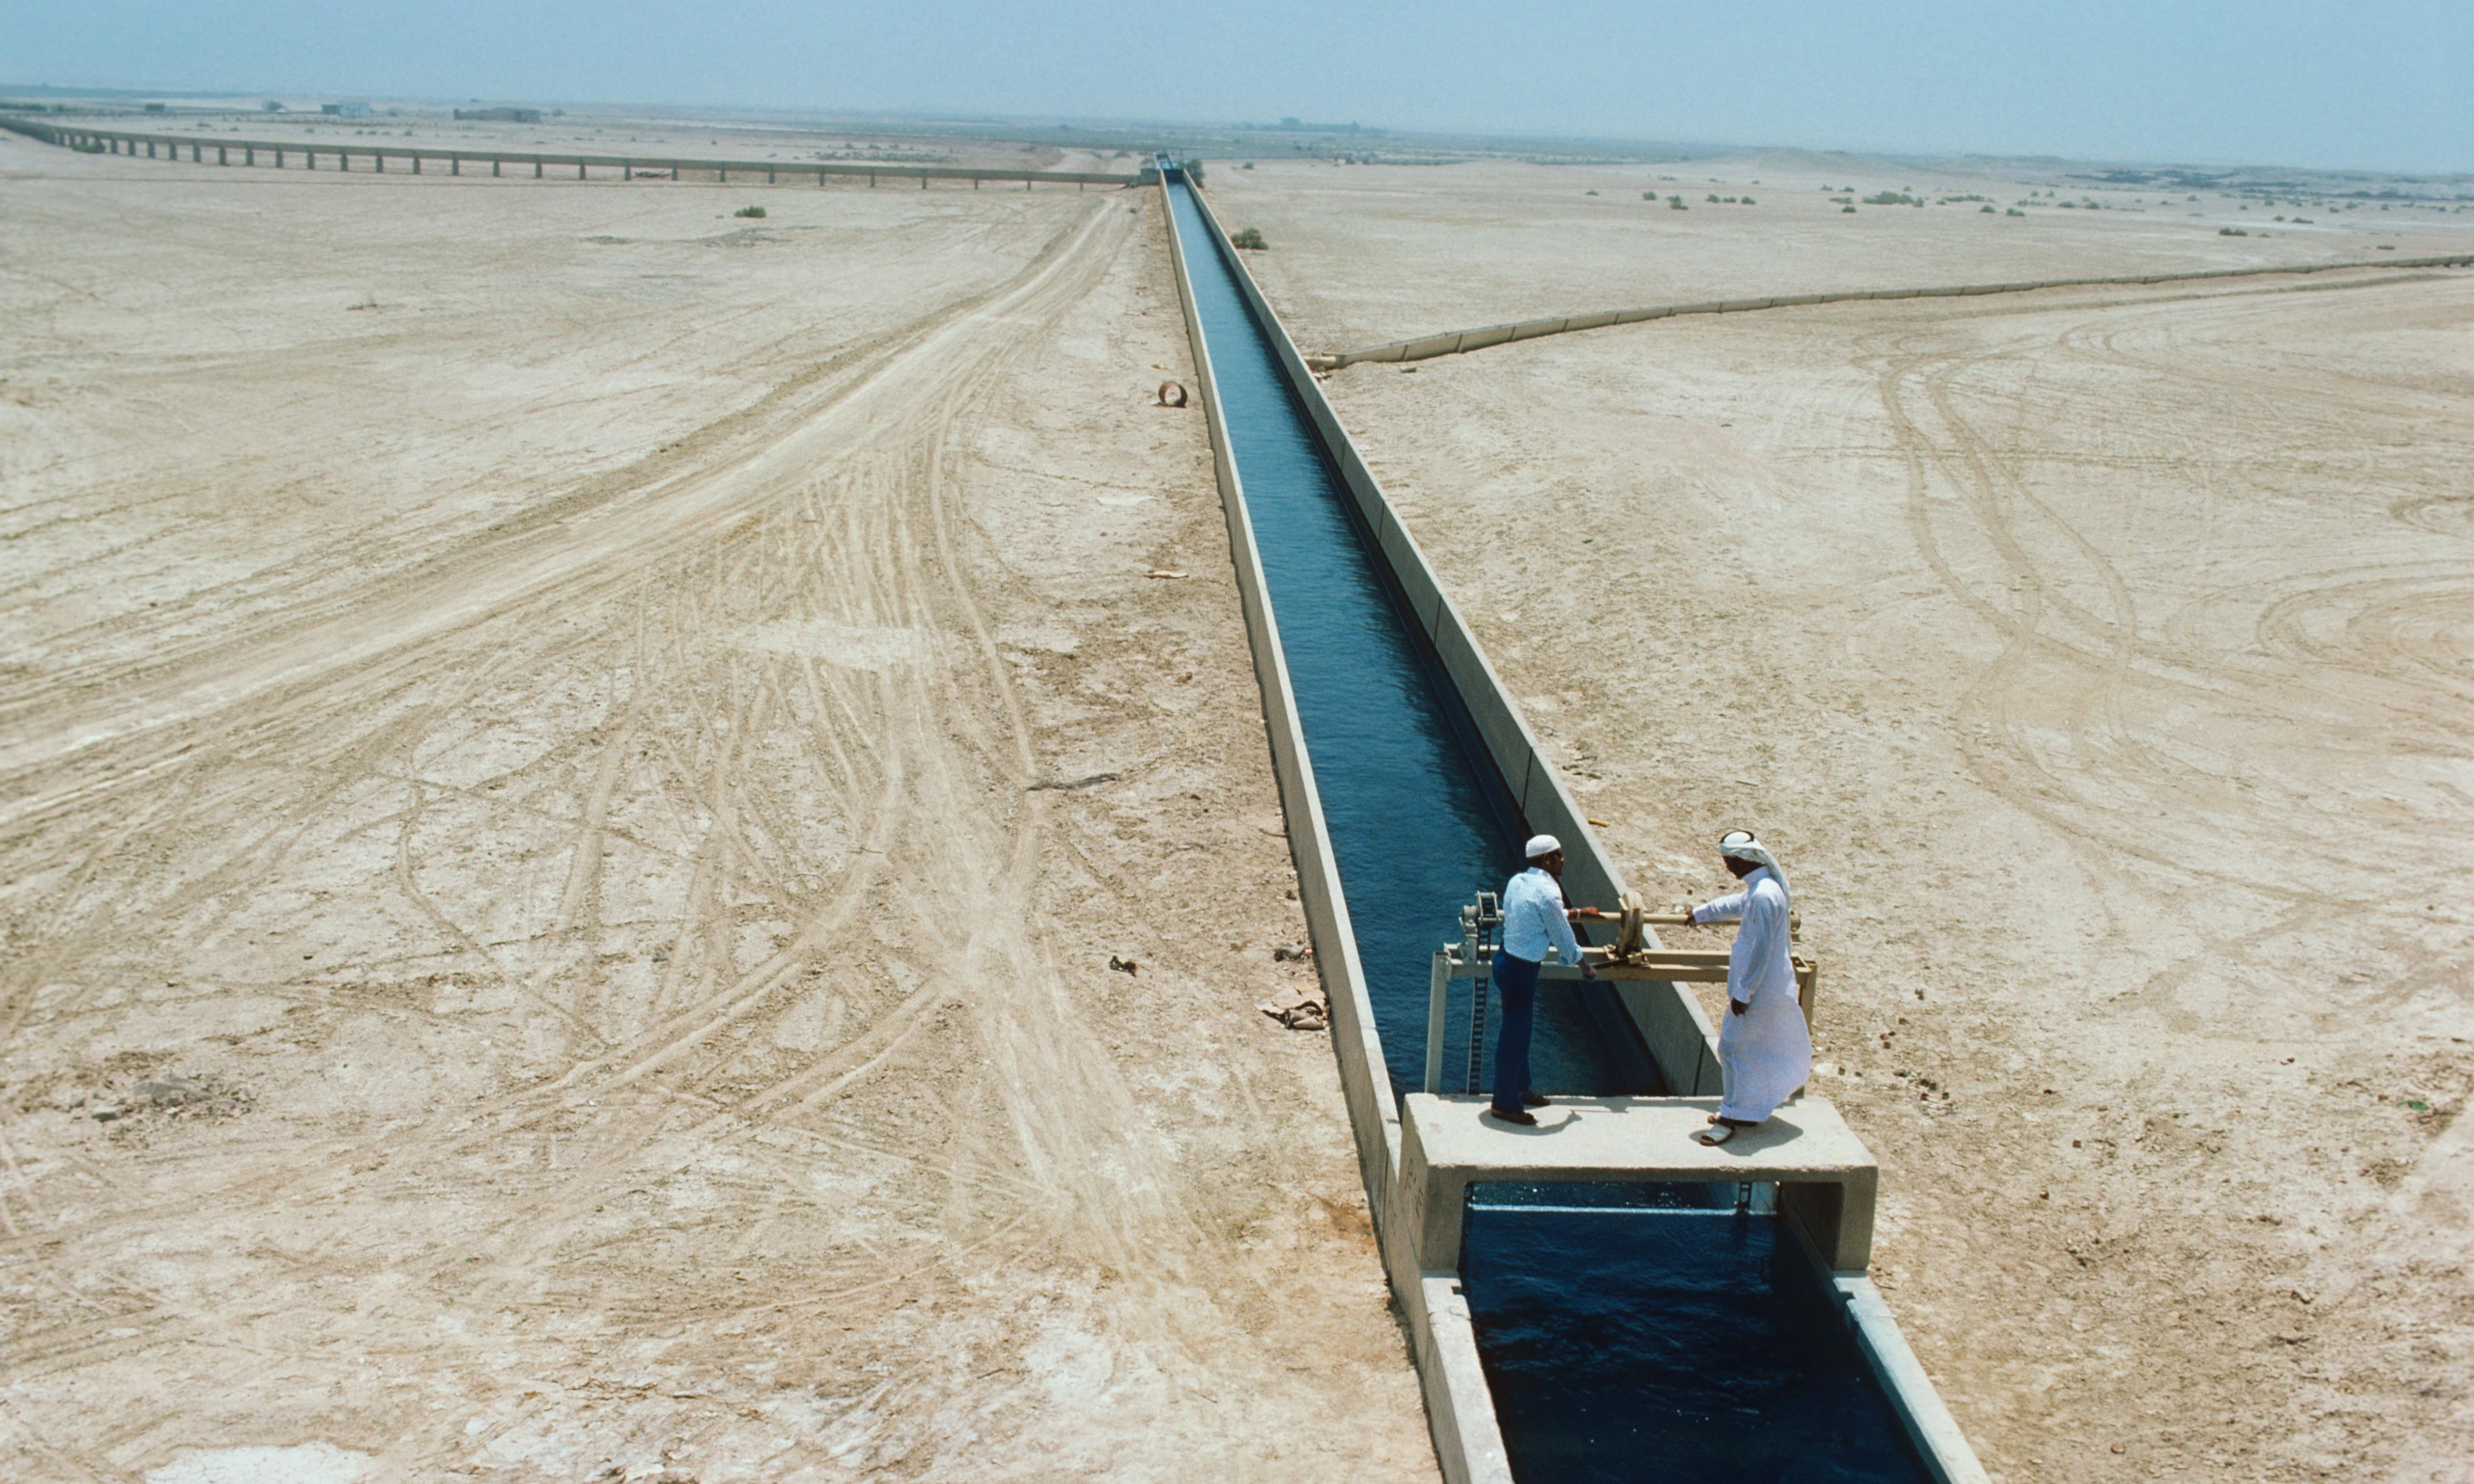 Oil built Saudi Arabia – will a lack of water destroy it?